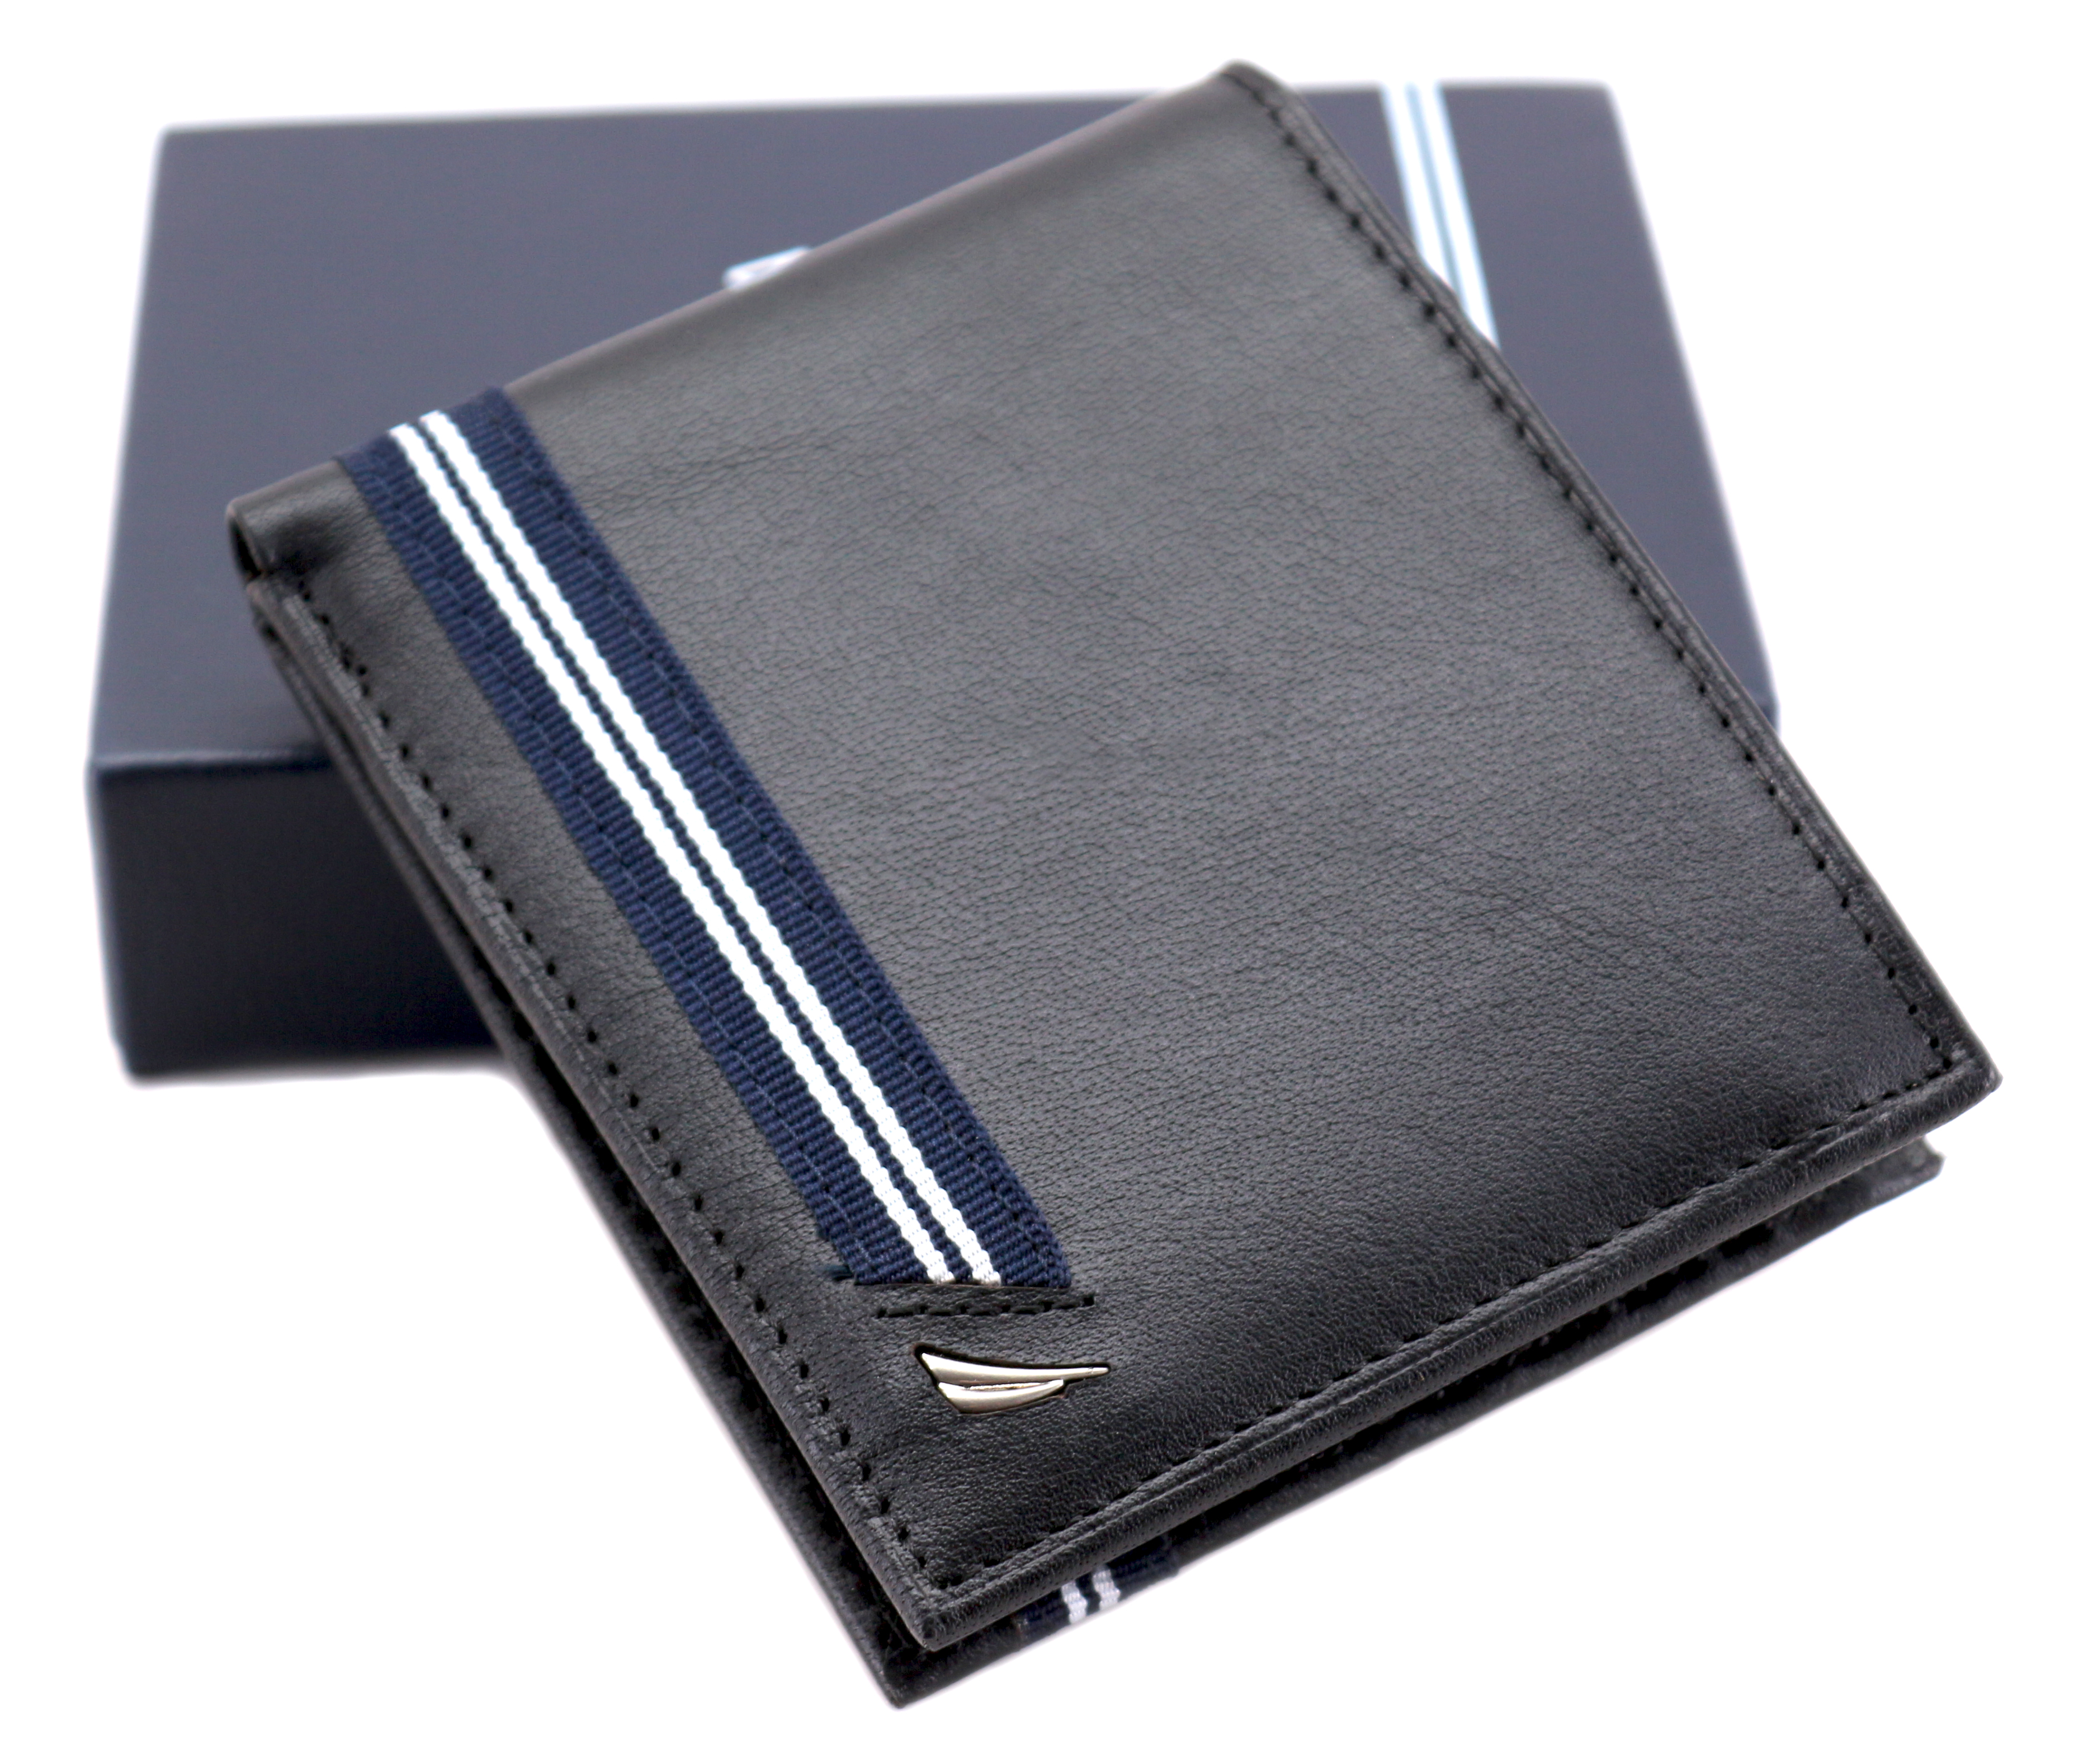 Nautica-Men-039-s-Genuine-Leather-Credit-Card-ID-Double-Billfold-Passcase-Wallet thumbnail 9